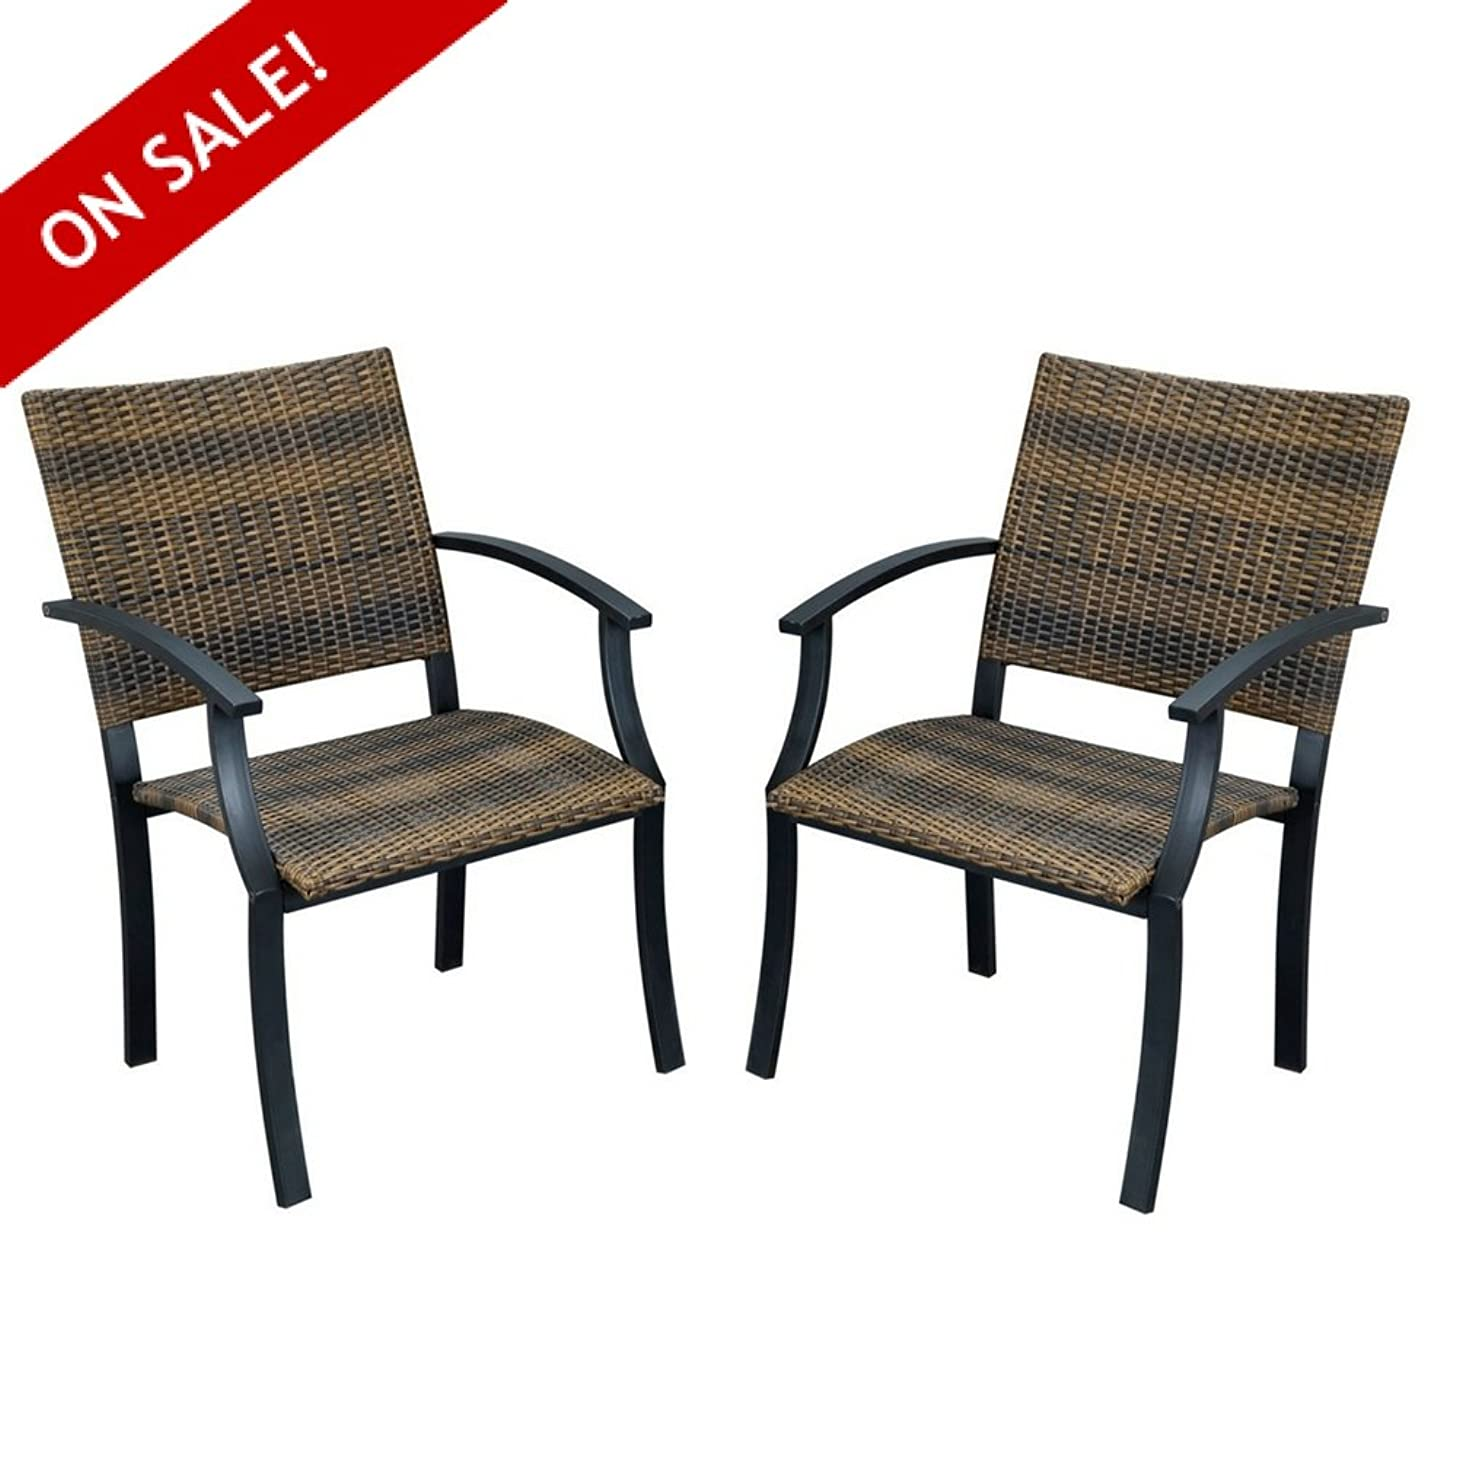 Patio Dinning Chairs Set Of 2 Contemporary Modern Best Outside Chairs Sets Clearance Sturdy Sidechair With Arms Outdoor And Indoor Backyard Porch Deck Lawn Garden Balcony And eBook By NAKSHOP